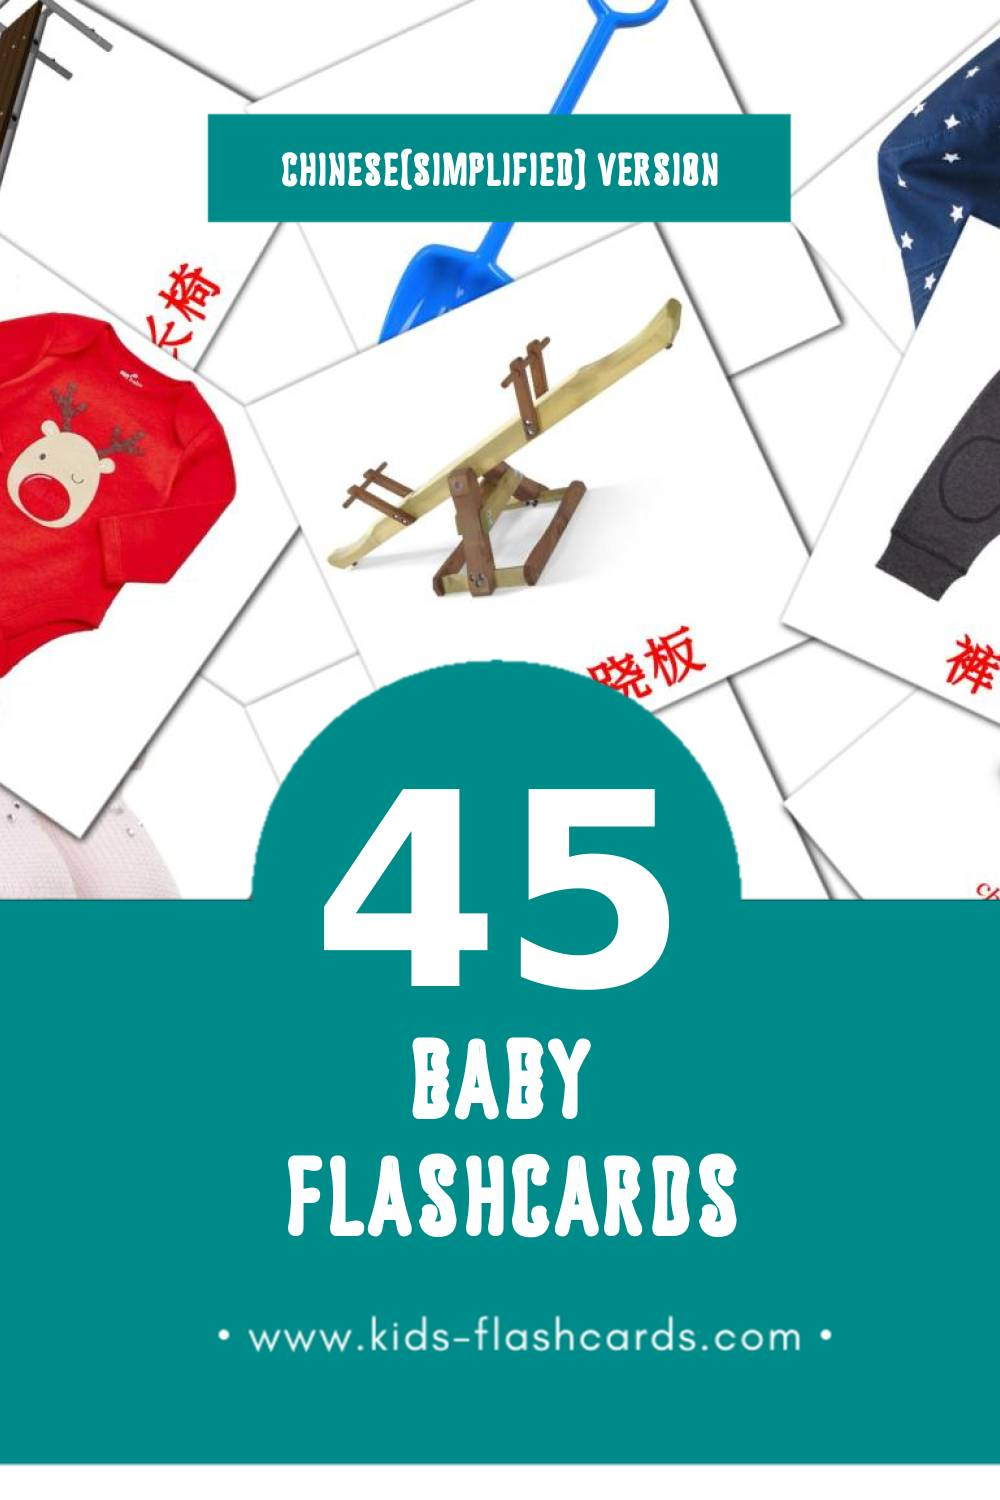 Visual 婴儿 Flashcards for Toddlers (33 cards in Chinese(Simplified))